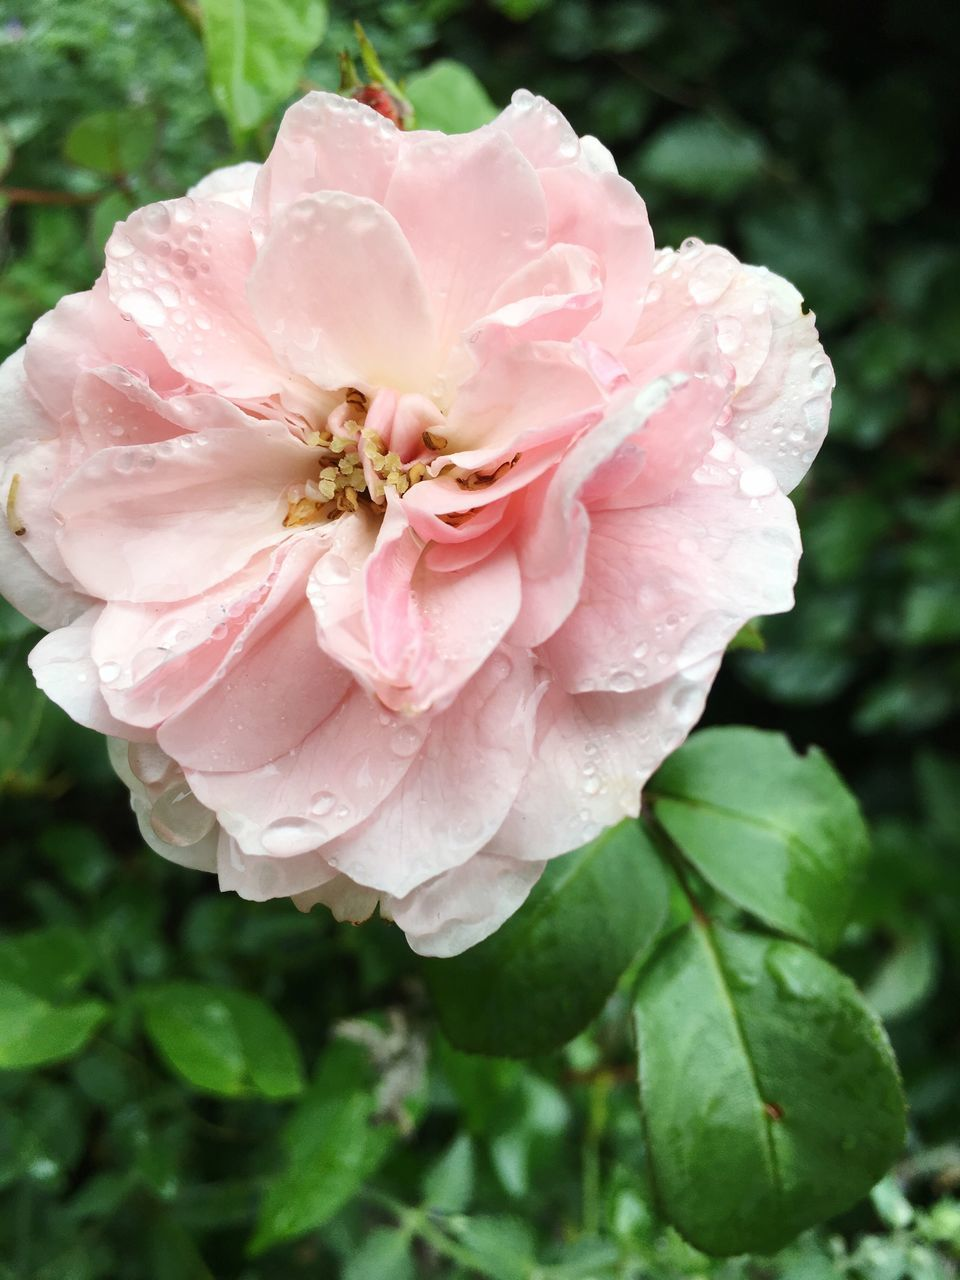 flower, petal, nature, beauty in nature, rose - flower, flower head, fragility, plant, growth, wild rose, drop, close-up, pink color, no people, wet, water, day, outdoors, leaf, blooming, freshness